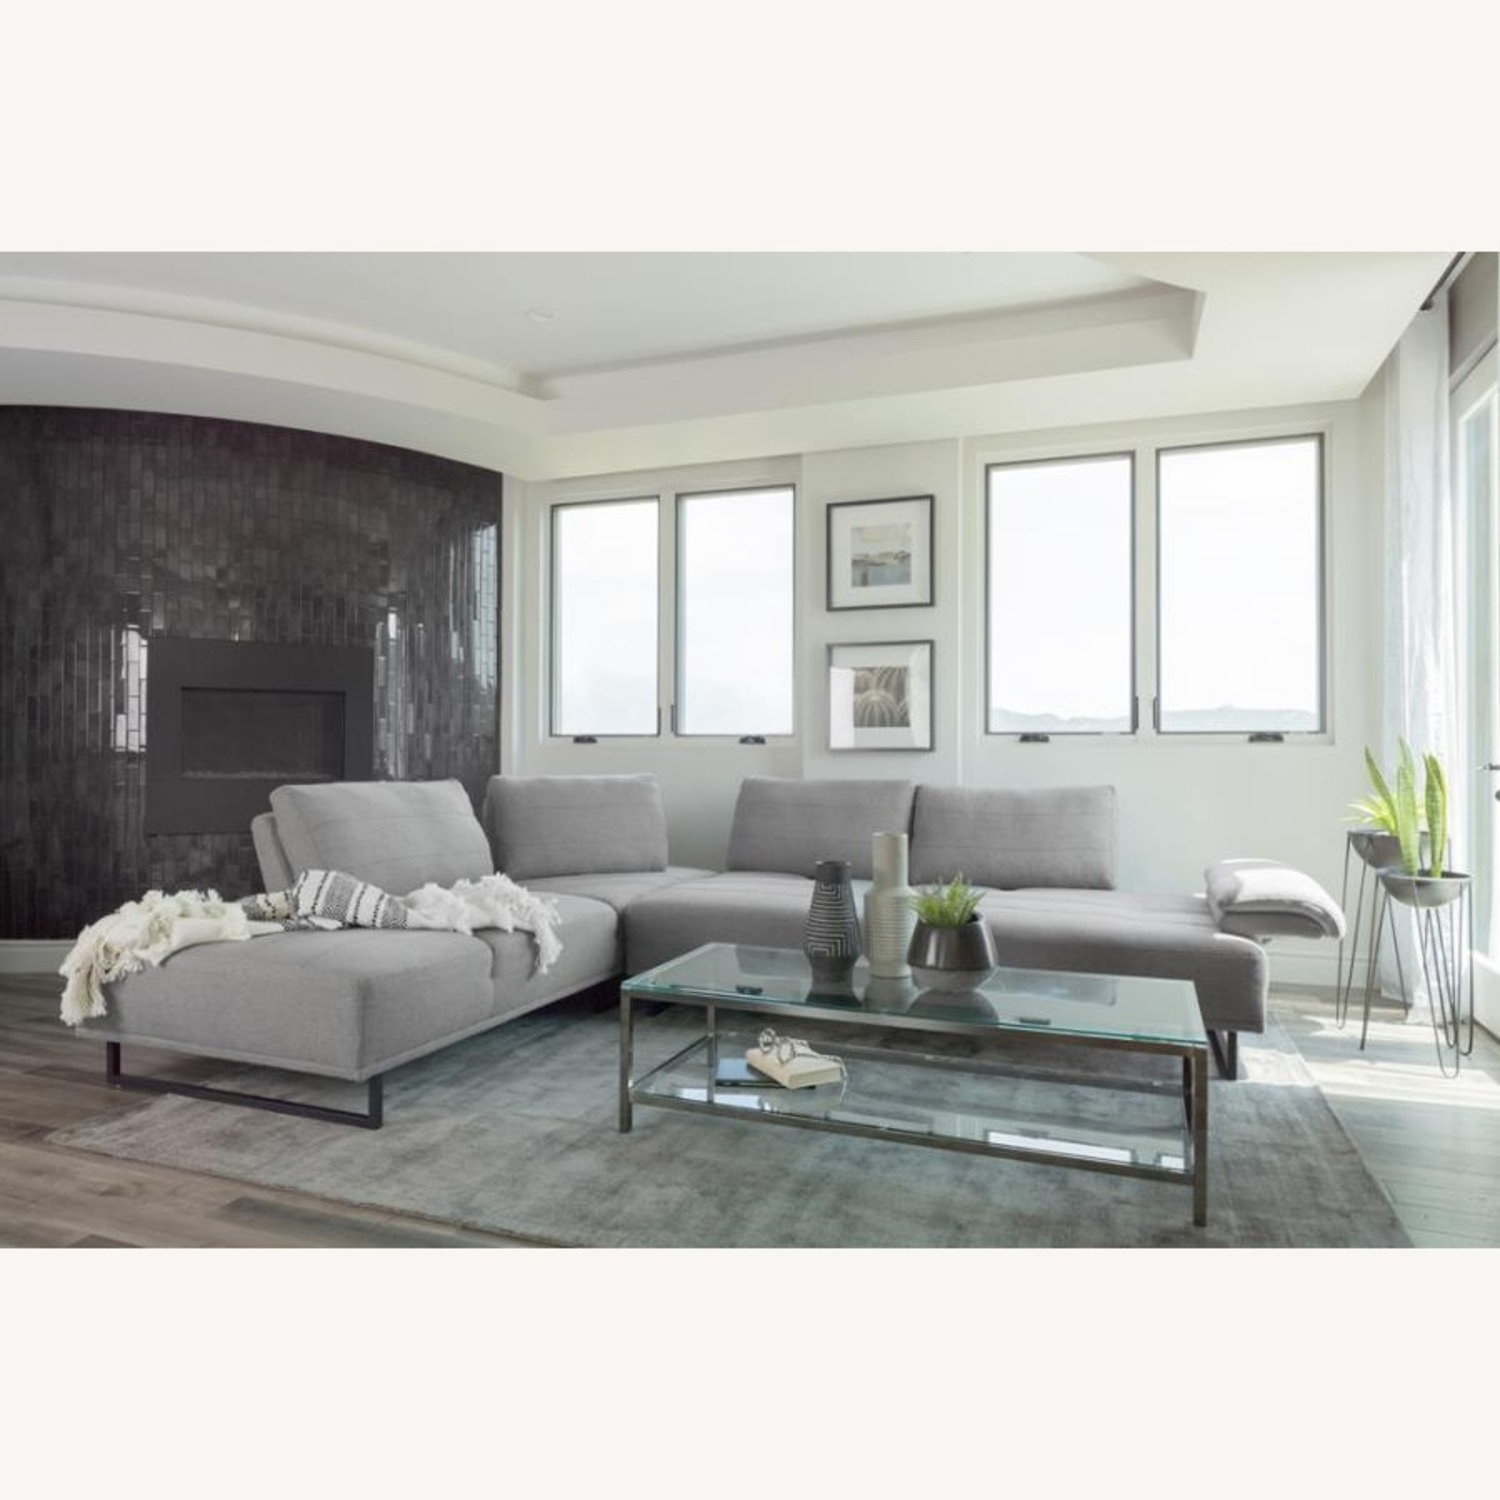 Sectional In Taupe Woven Fabric Upholstery - image-2